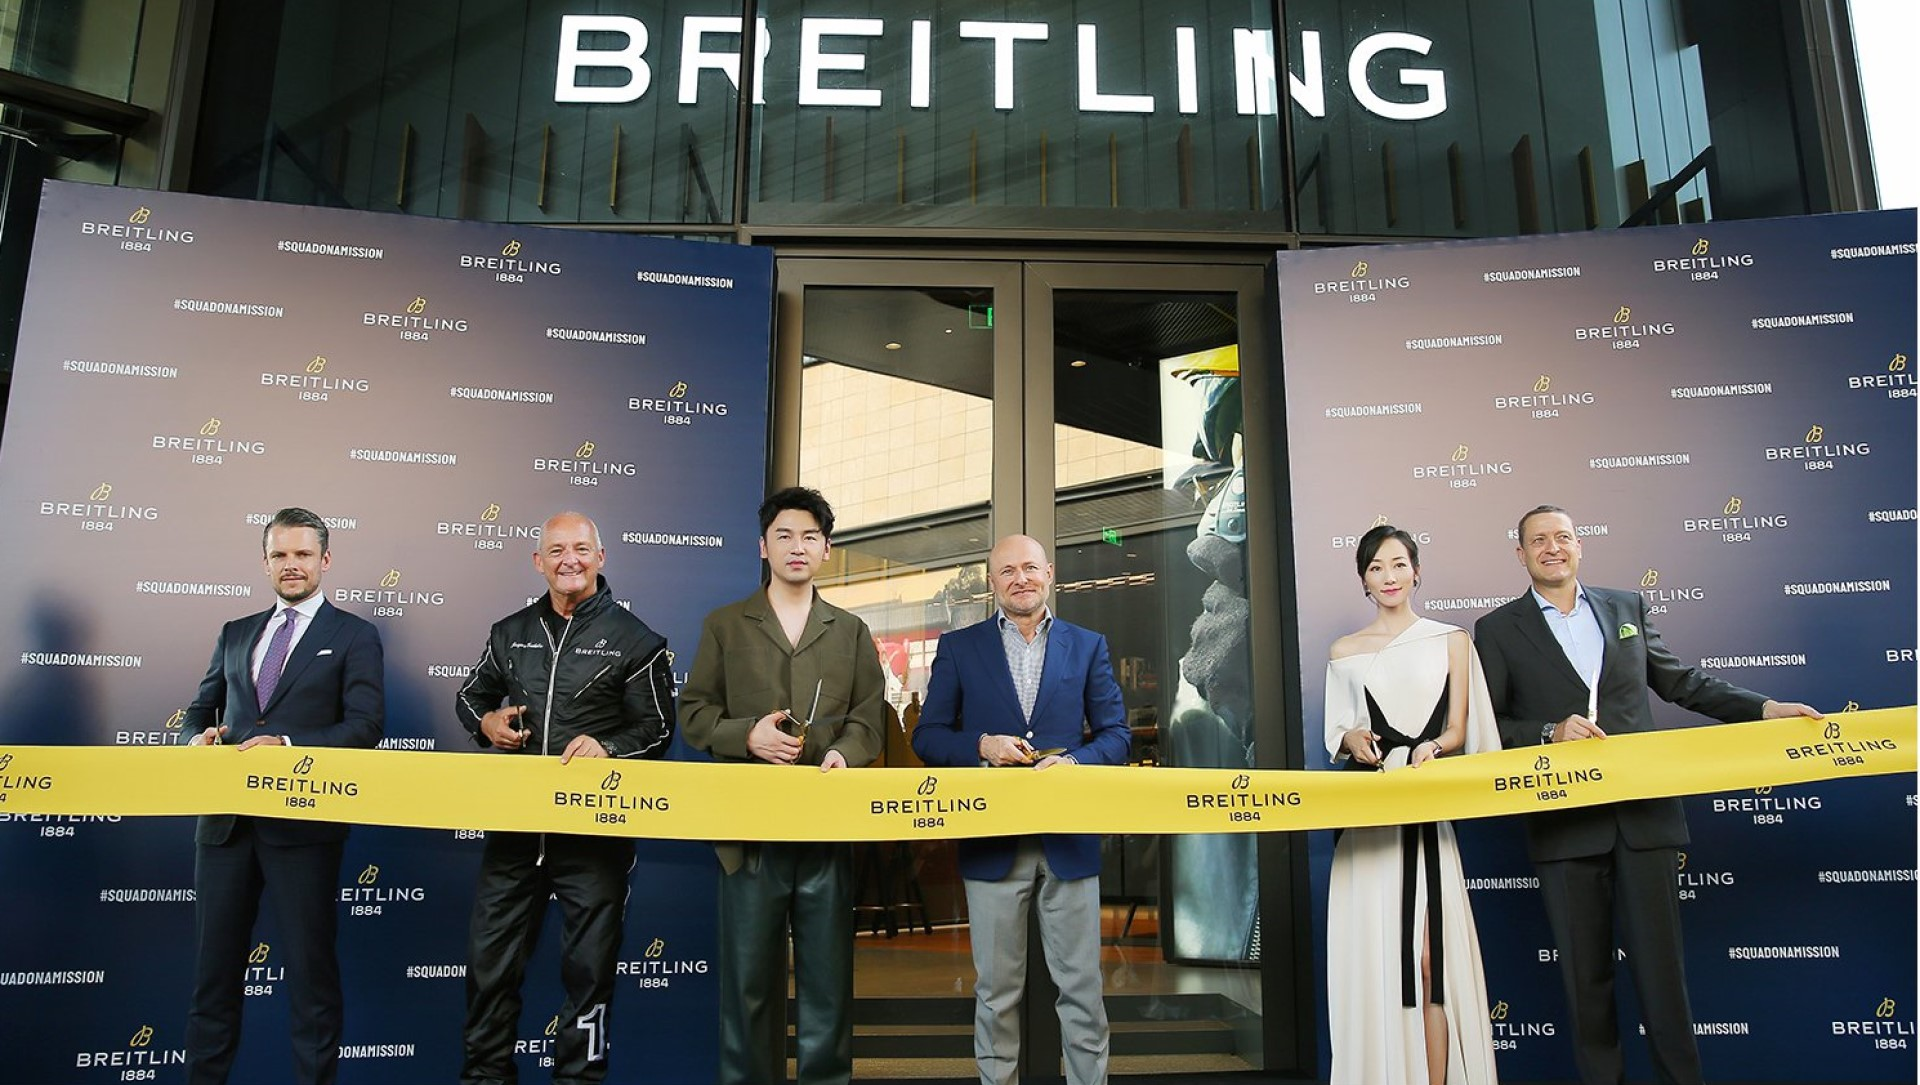 https://static.breitling.cn/media/wysiwyg/news/18-06-27/1_1.jpg